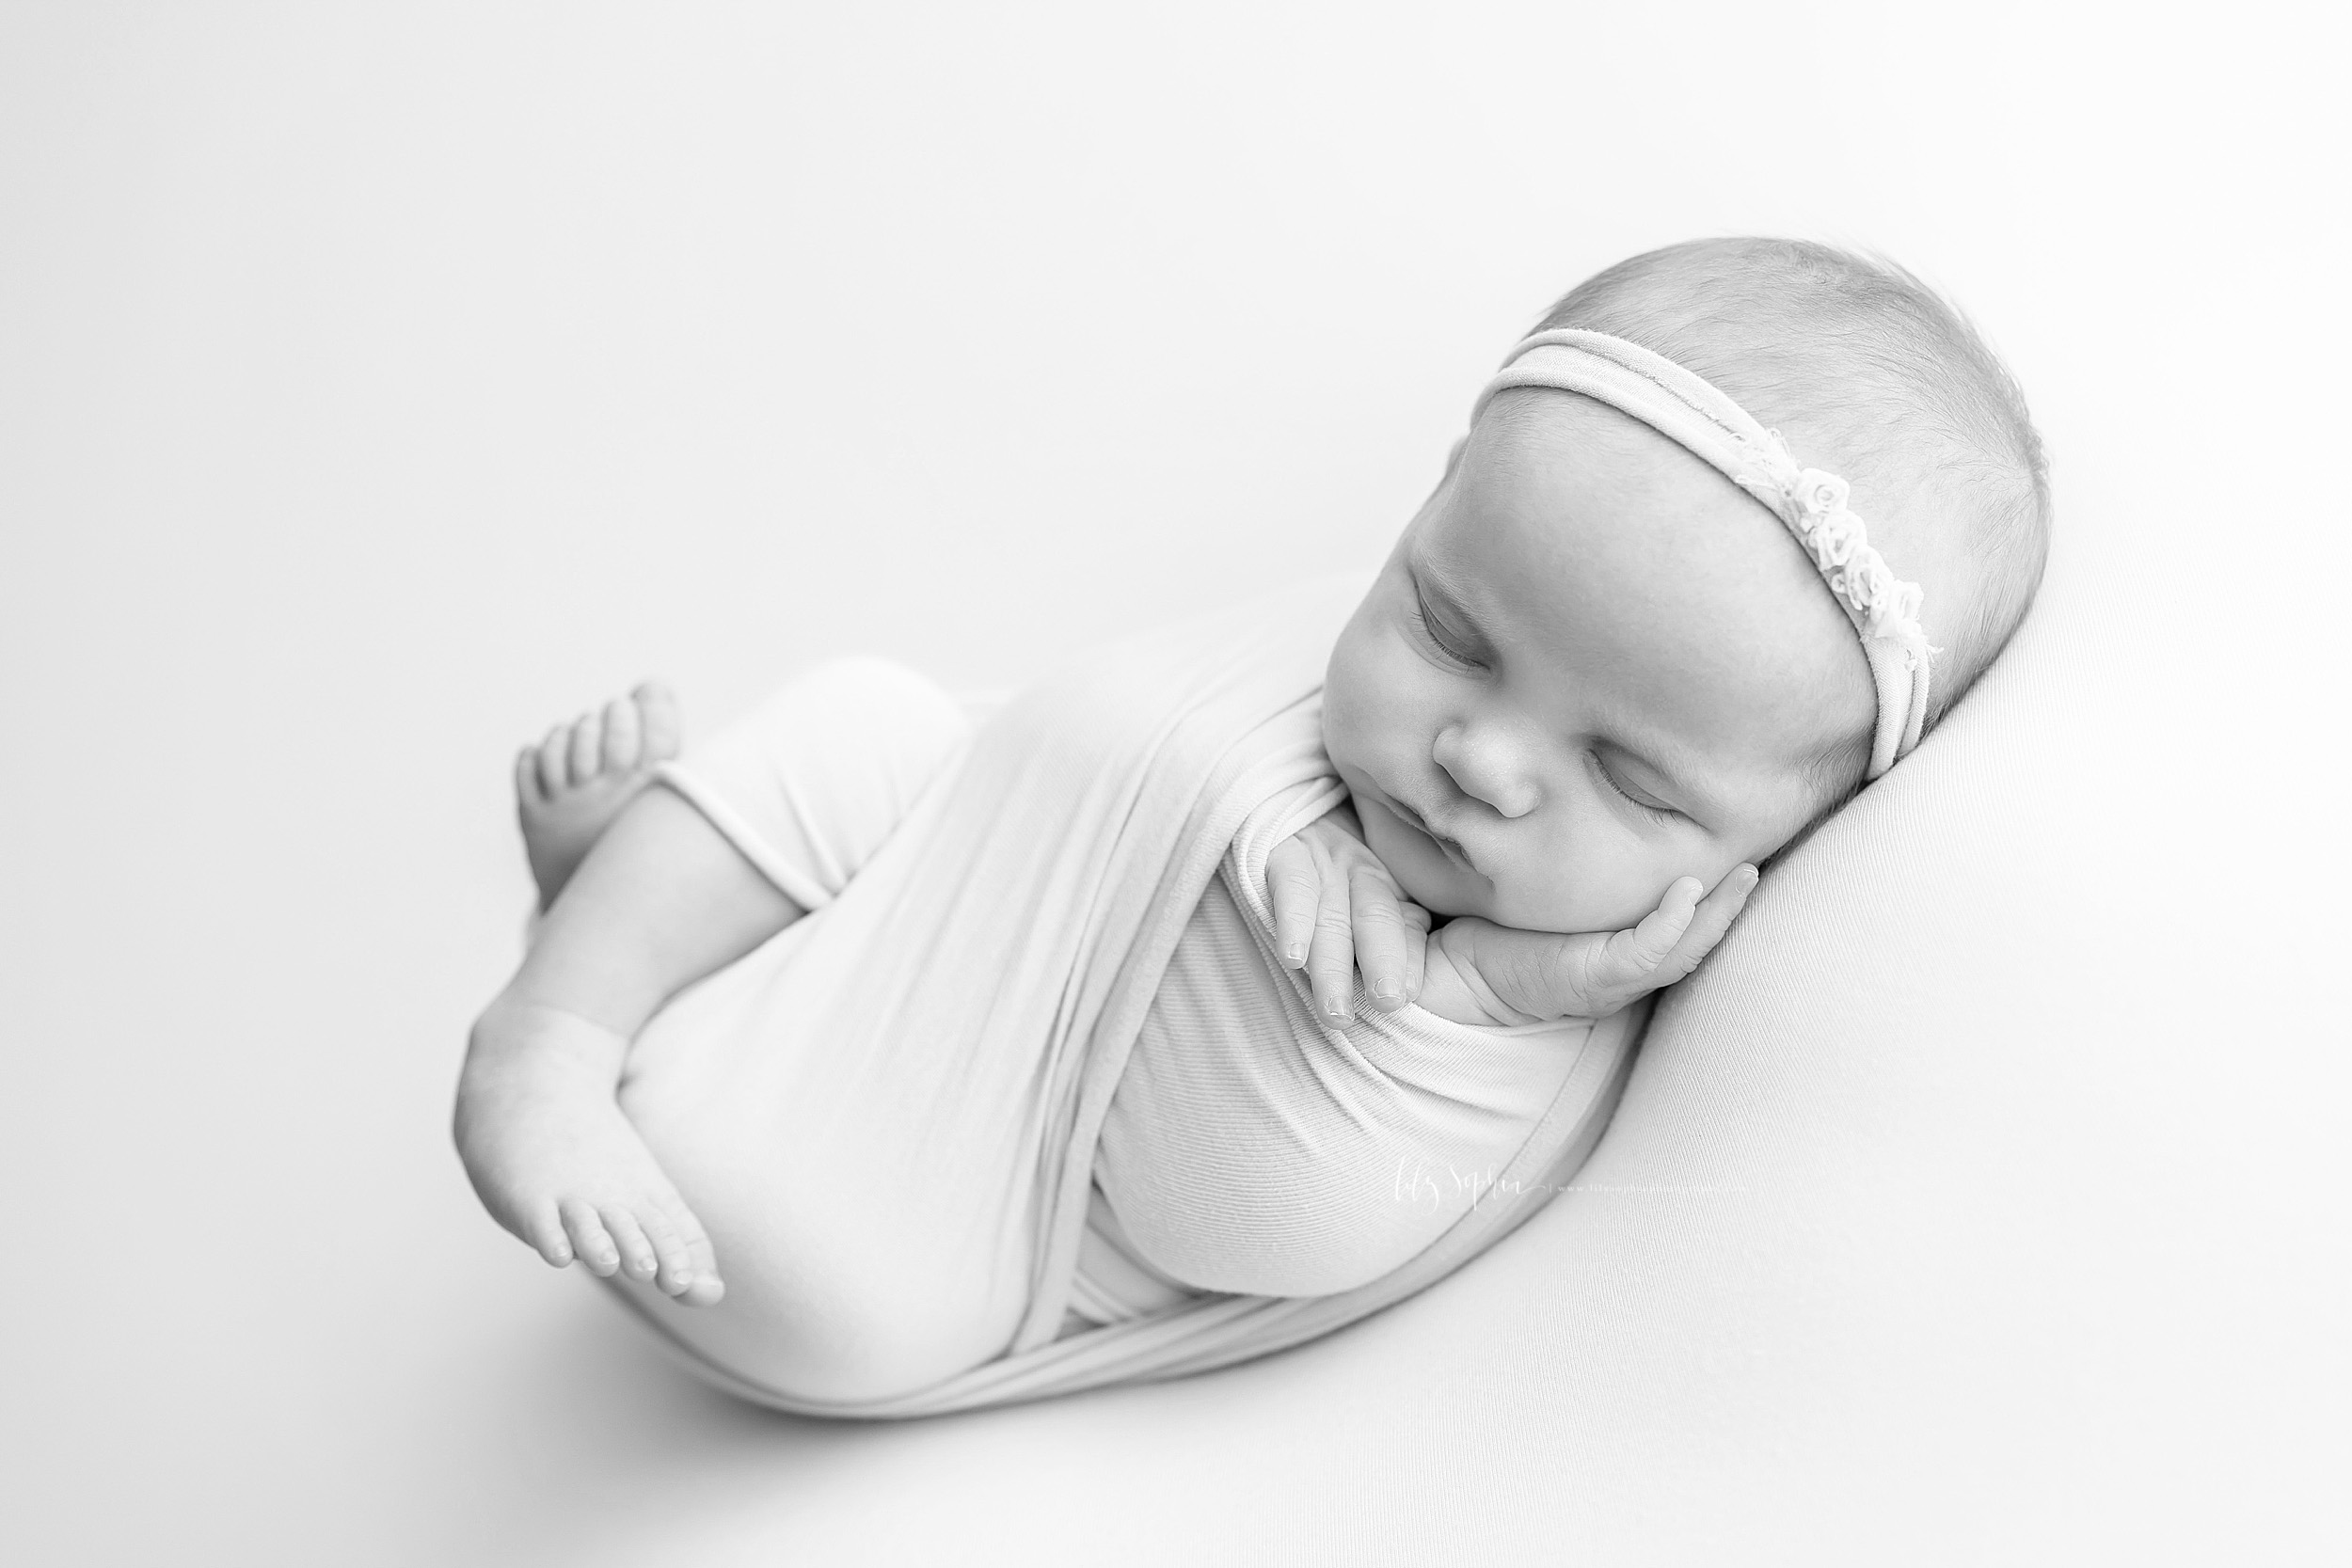 Black and white image of a sleeping infant girl wrapped in a knit  swaddle. Her legs are bent and her feet are sticking out the bottom of the swaddle while her little hands are sticking out the top. Her left hand is open and resting on her cheek. She is wearing an elastic headband with three tiny roses on it in her hair.